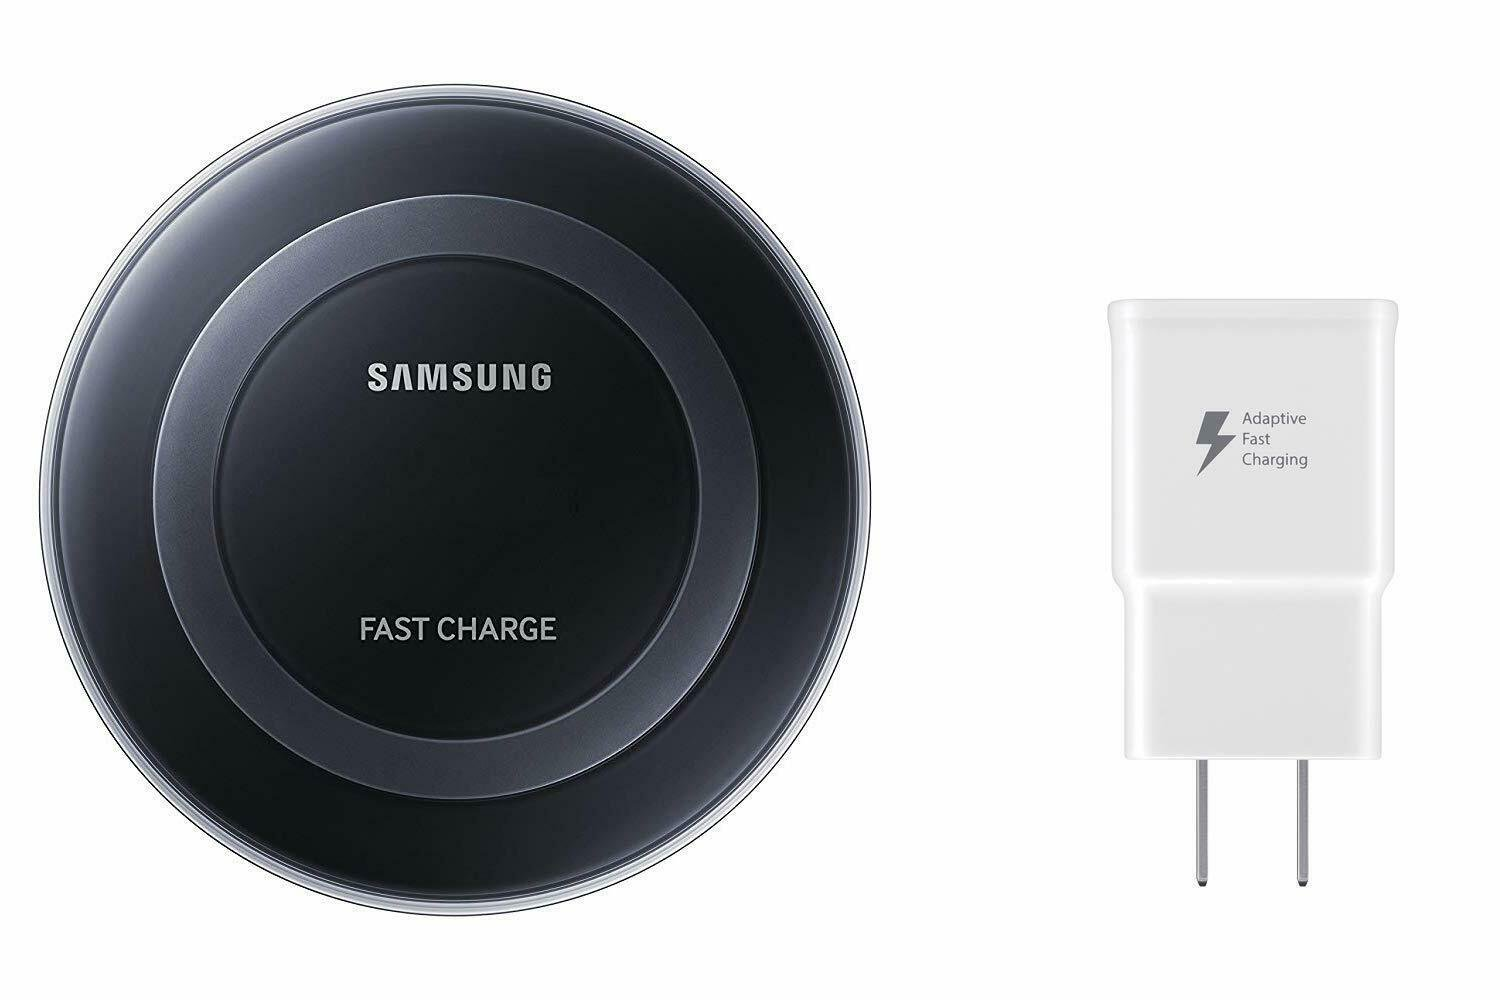 Samsung Qi Certified Fast Charge Wireless Charger Pad with Wall Charger